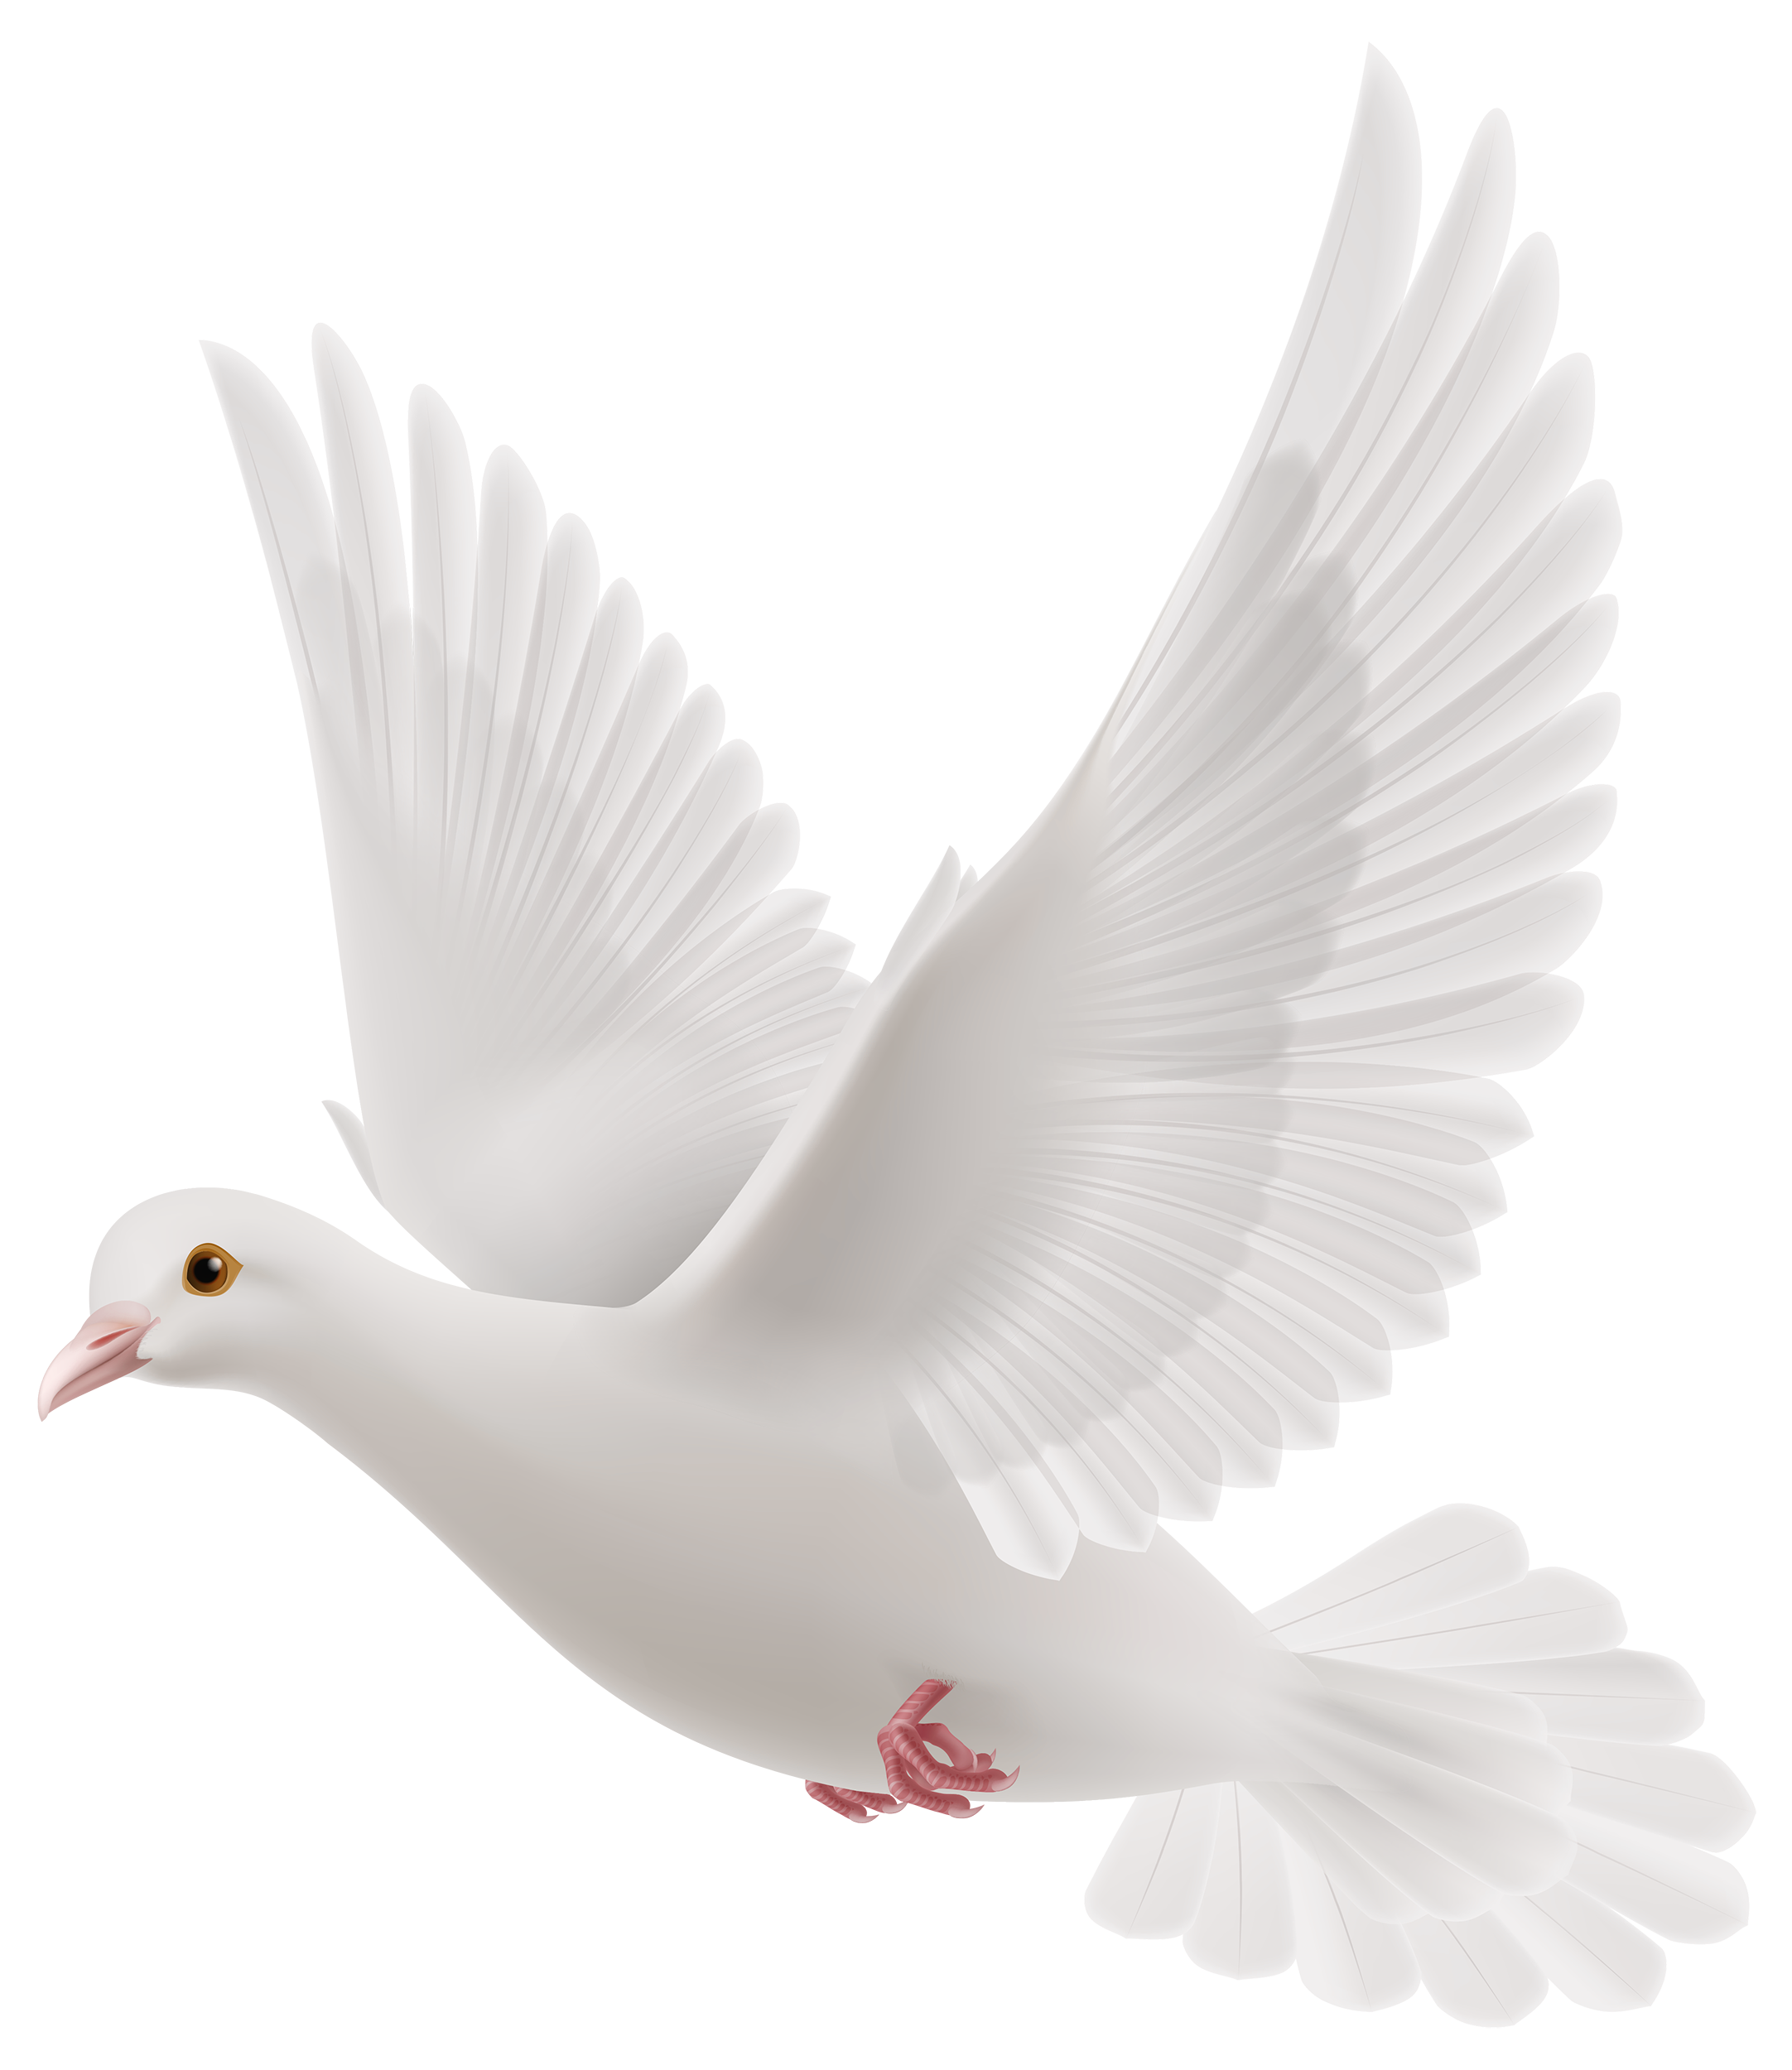 White Dove clipart #4, Download drawings